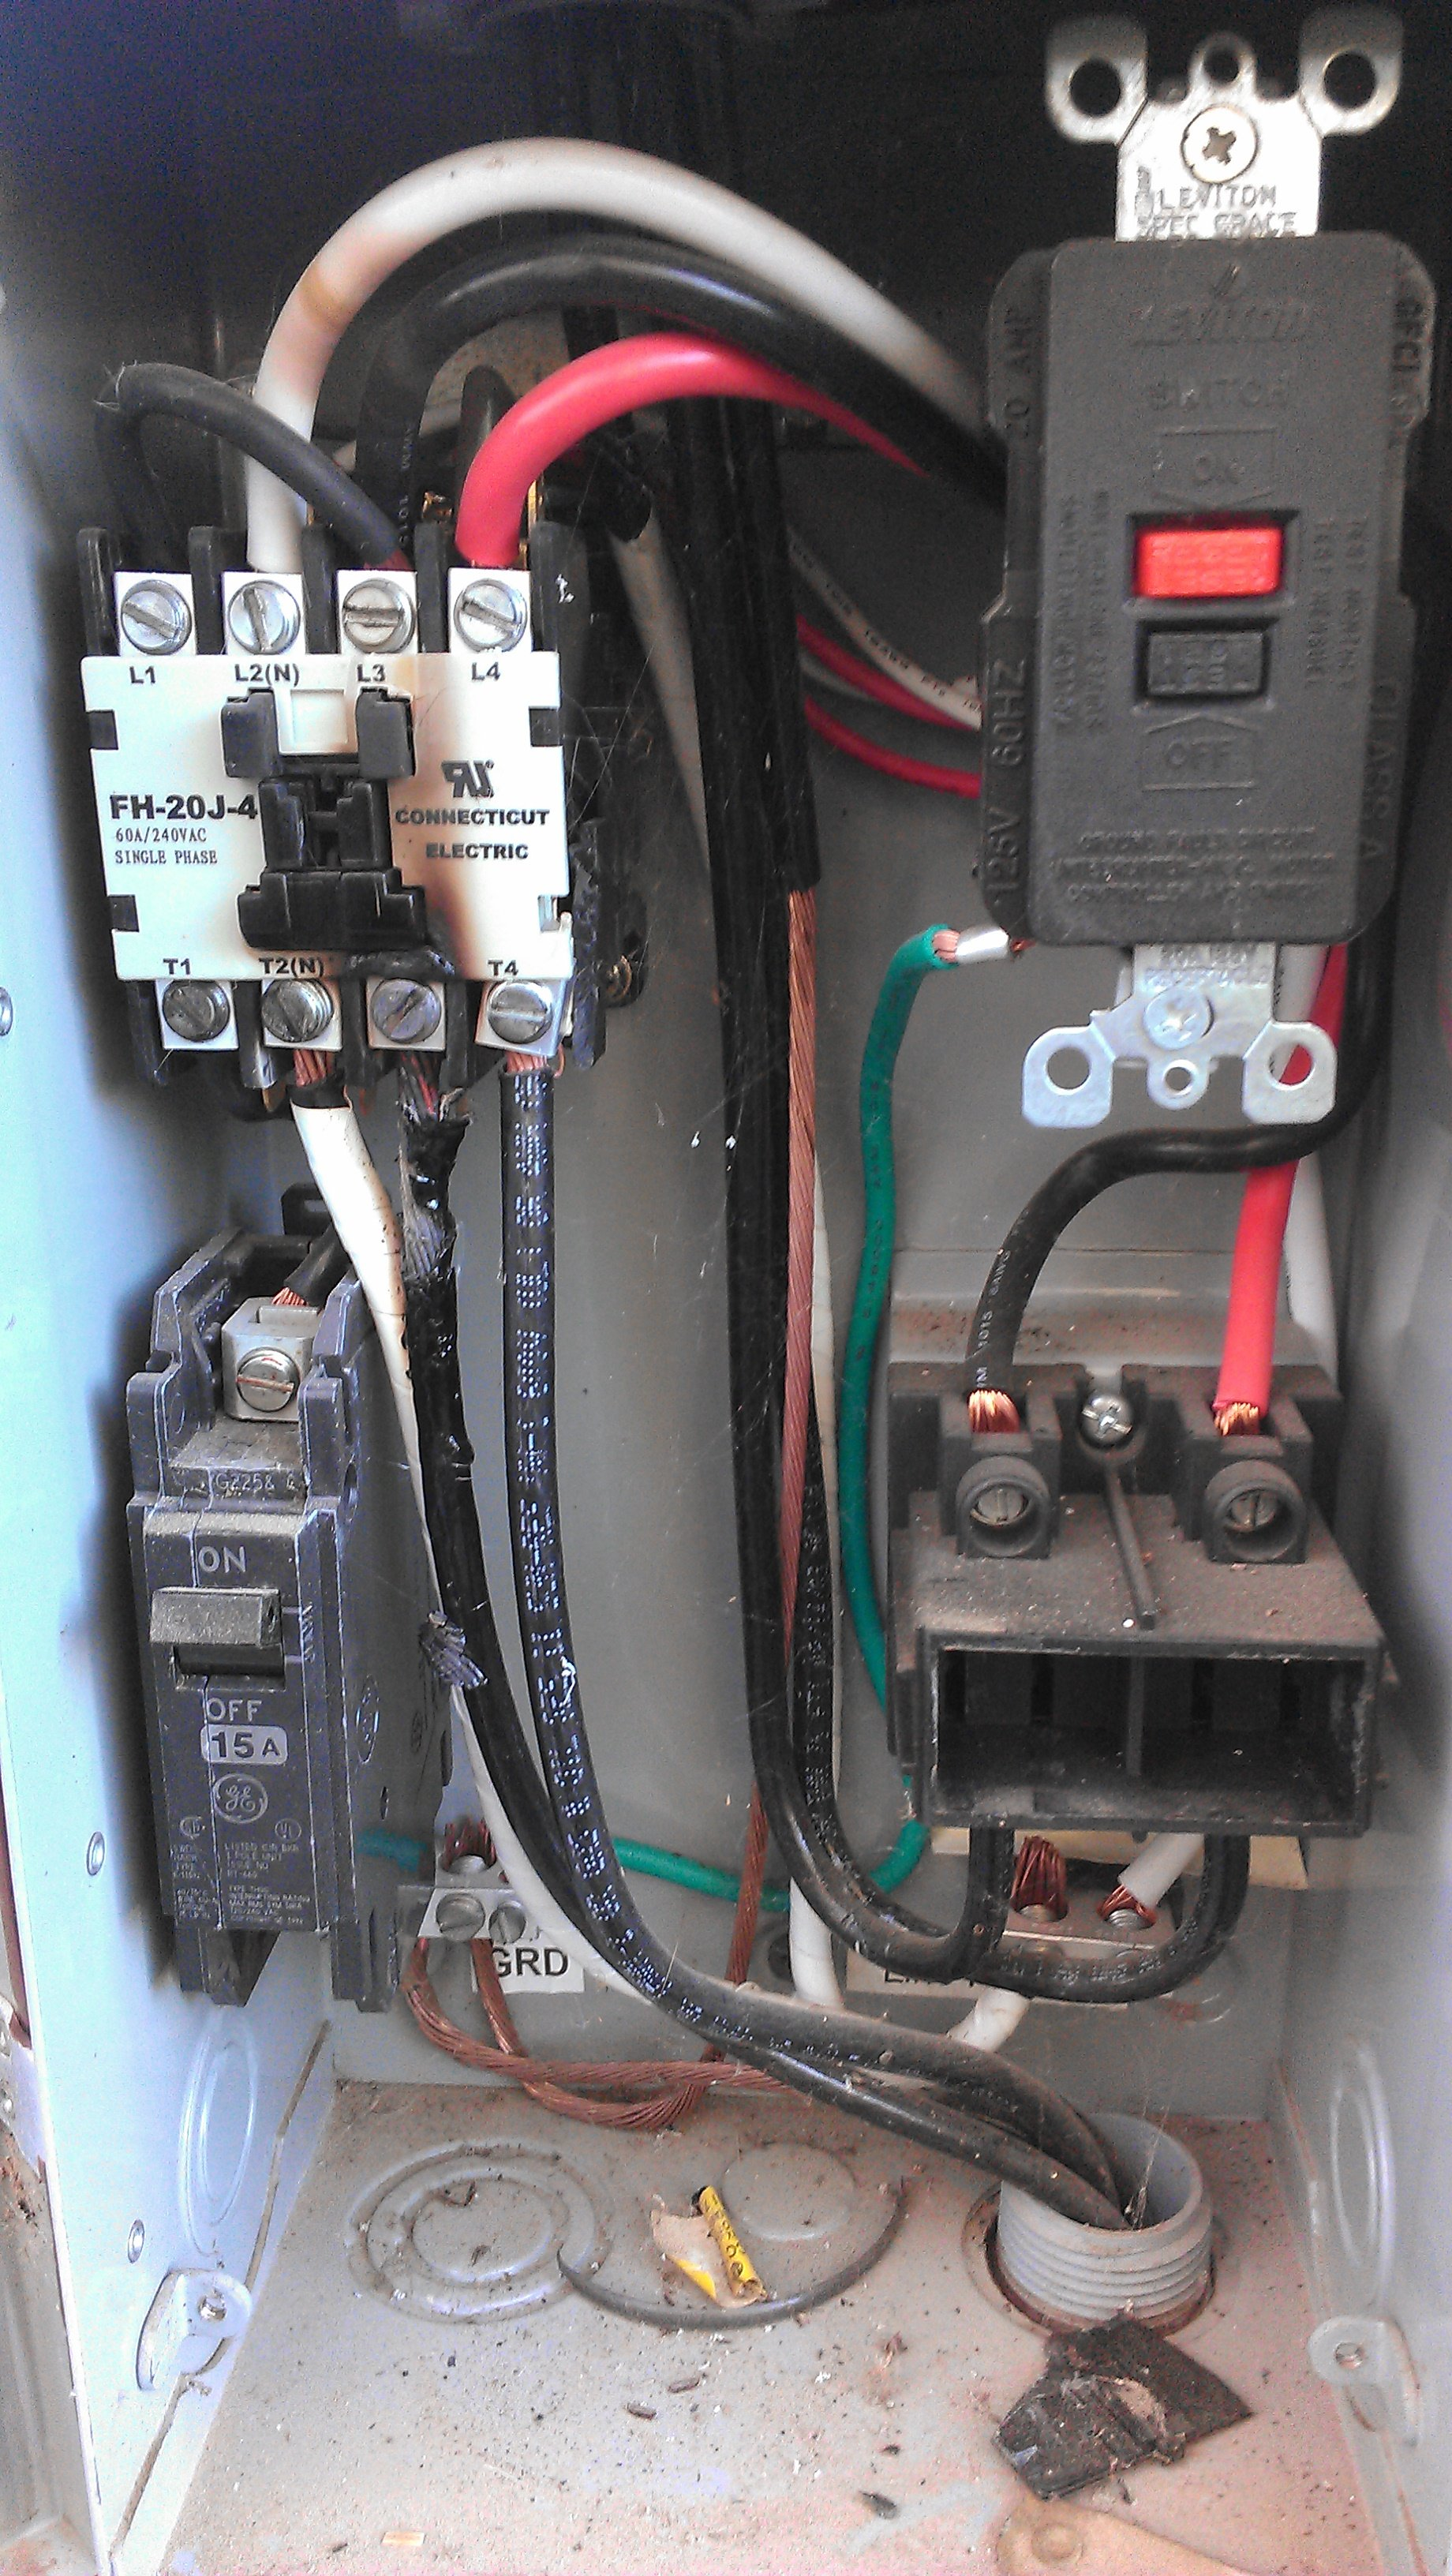 wiring diagram for a hot tub wiring a hot tub pump my hot tub gfci junction box fh 20j 4 conecticut electric